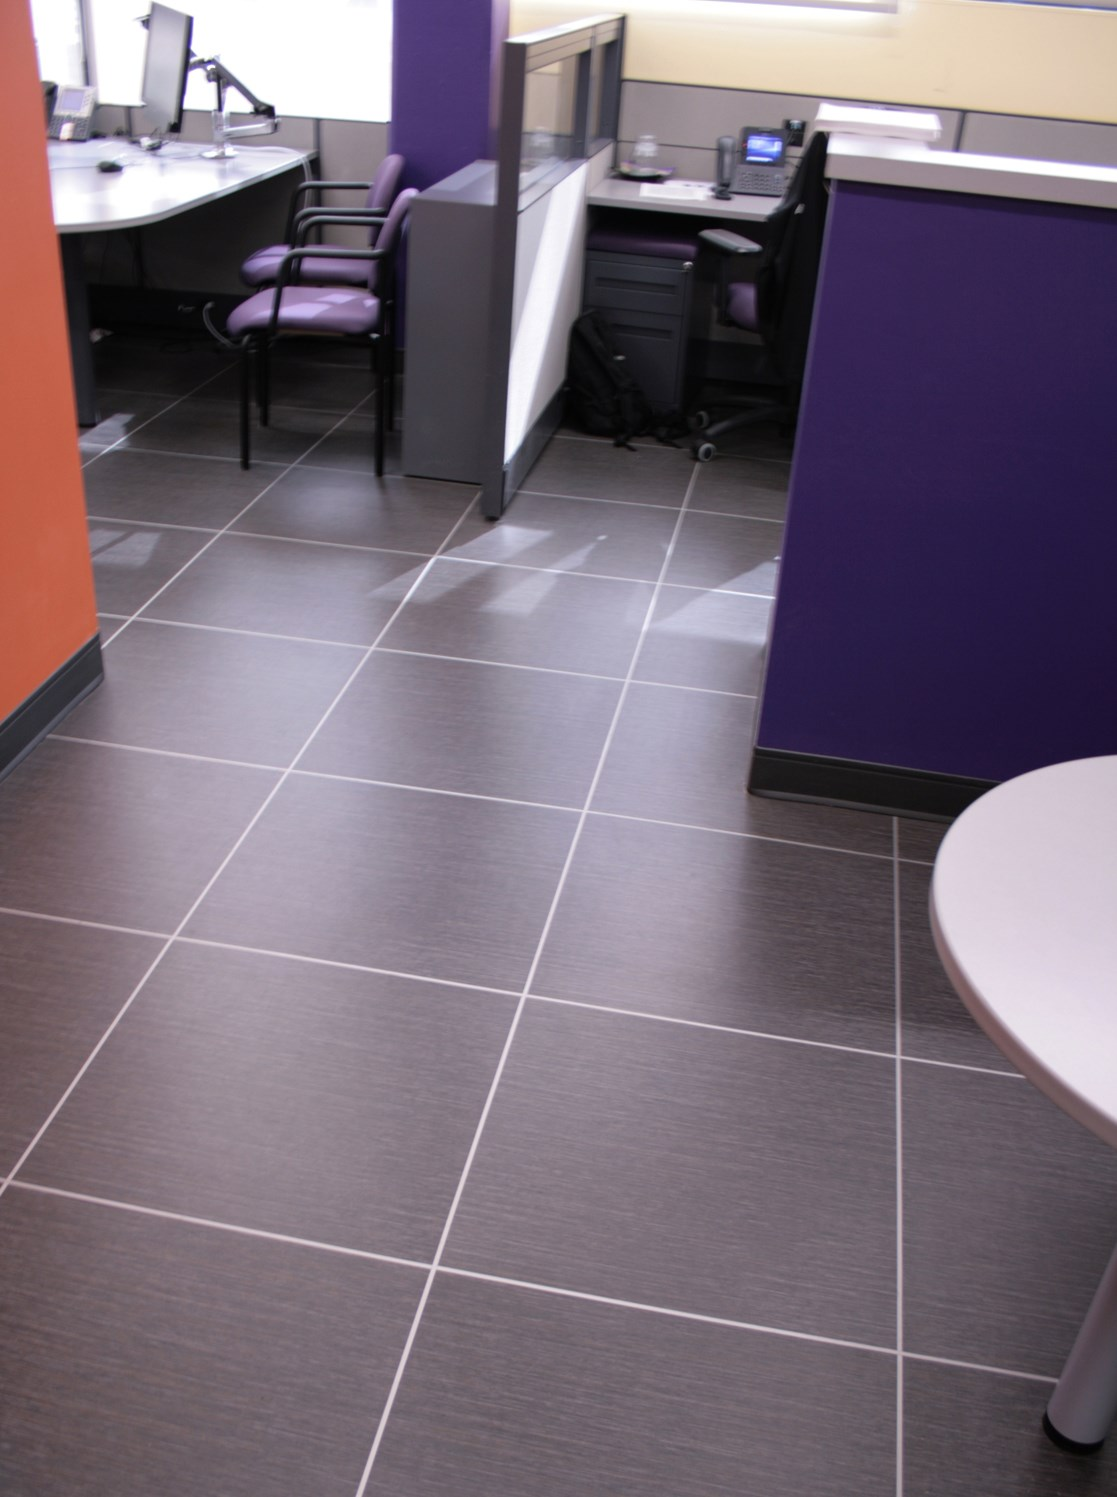 Vinyl Flooring vs. Ceramic Tile Which One Is Right for You vinyl flooring vs ceramic tile